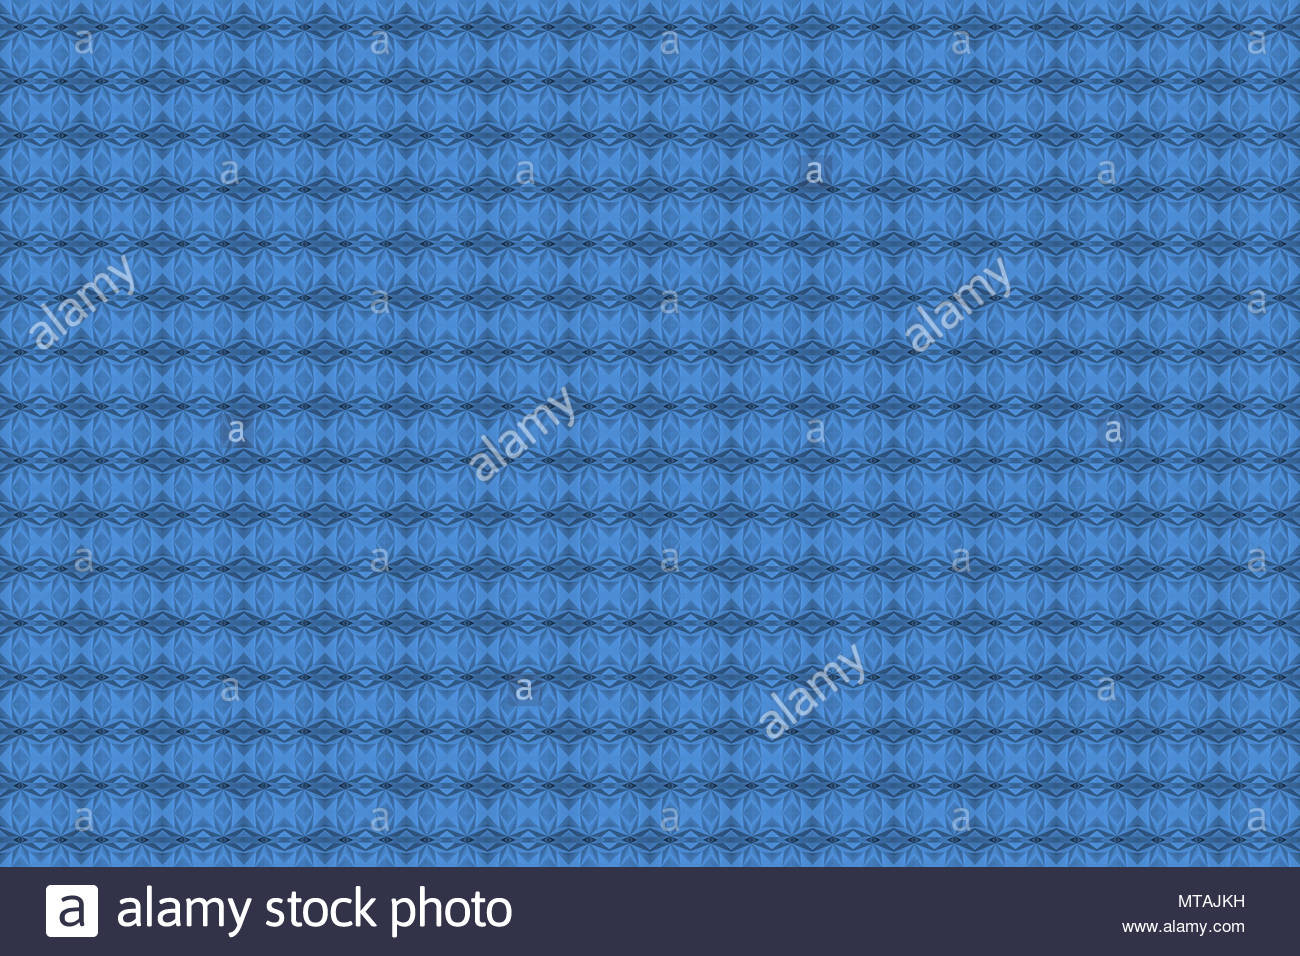 blue pantone 16 4132 little boy blue tile wallpaper background abstract pattern seamless monochrome graphic design pattern image